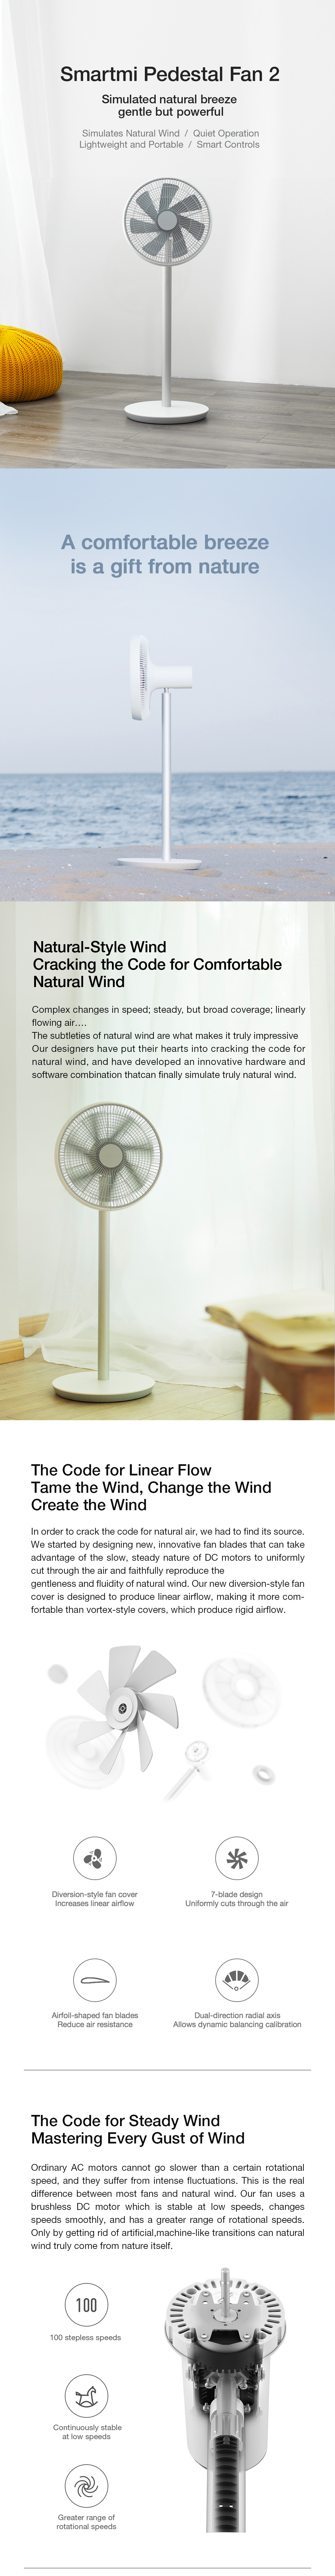 2019 New Version Smartmi Natural Wind Pedestal Fan 2 with MIJIA APP Control DC Frequency Fan 20W[XIAOMI Ecological Chain]